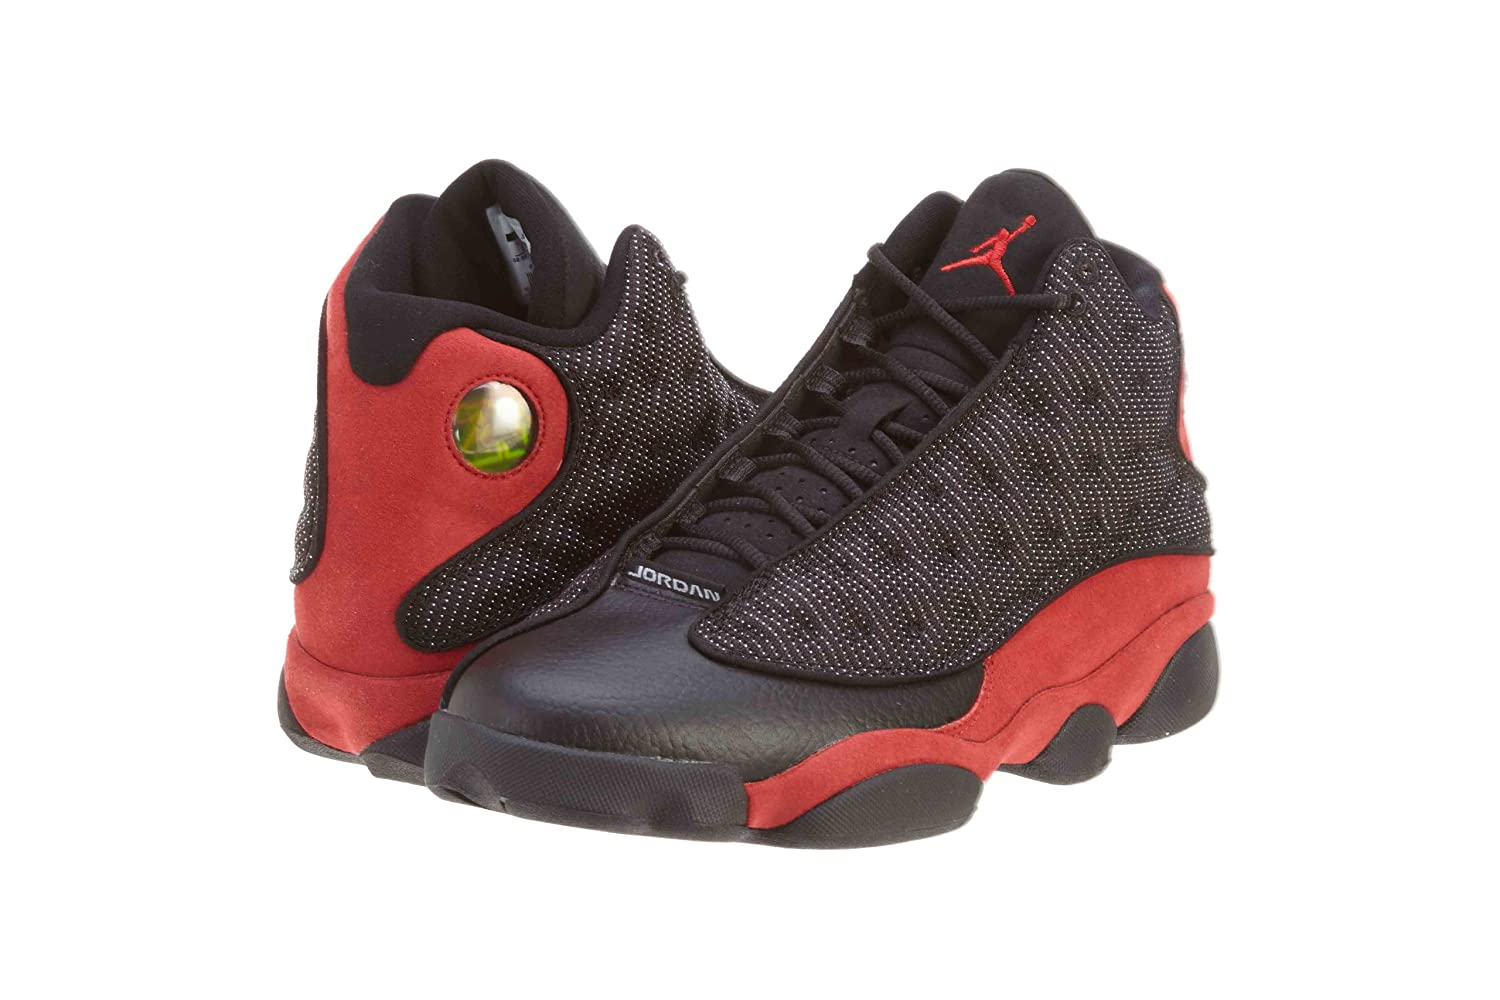 NIKE Mens Air Jordan Retro 13